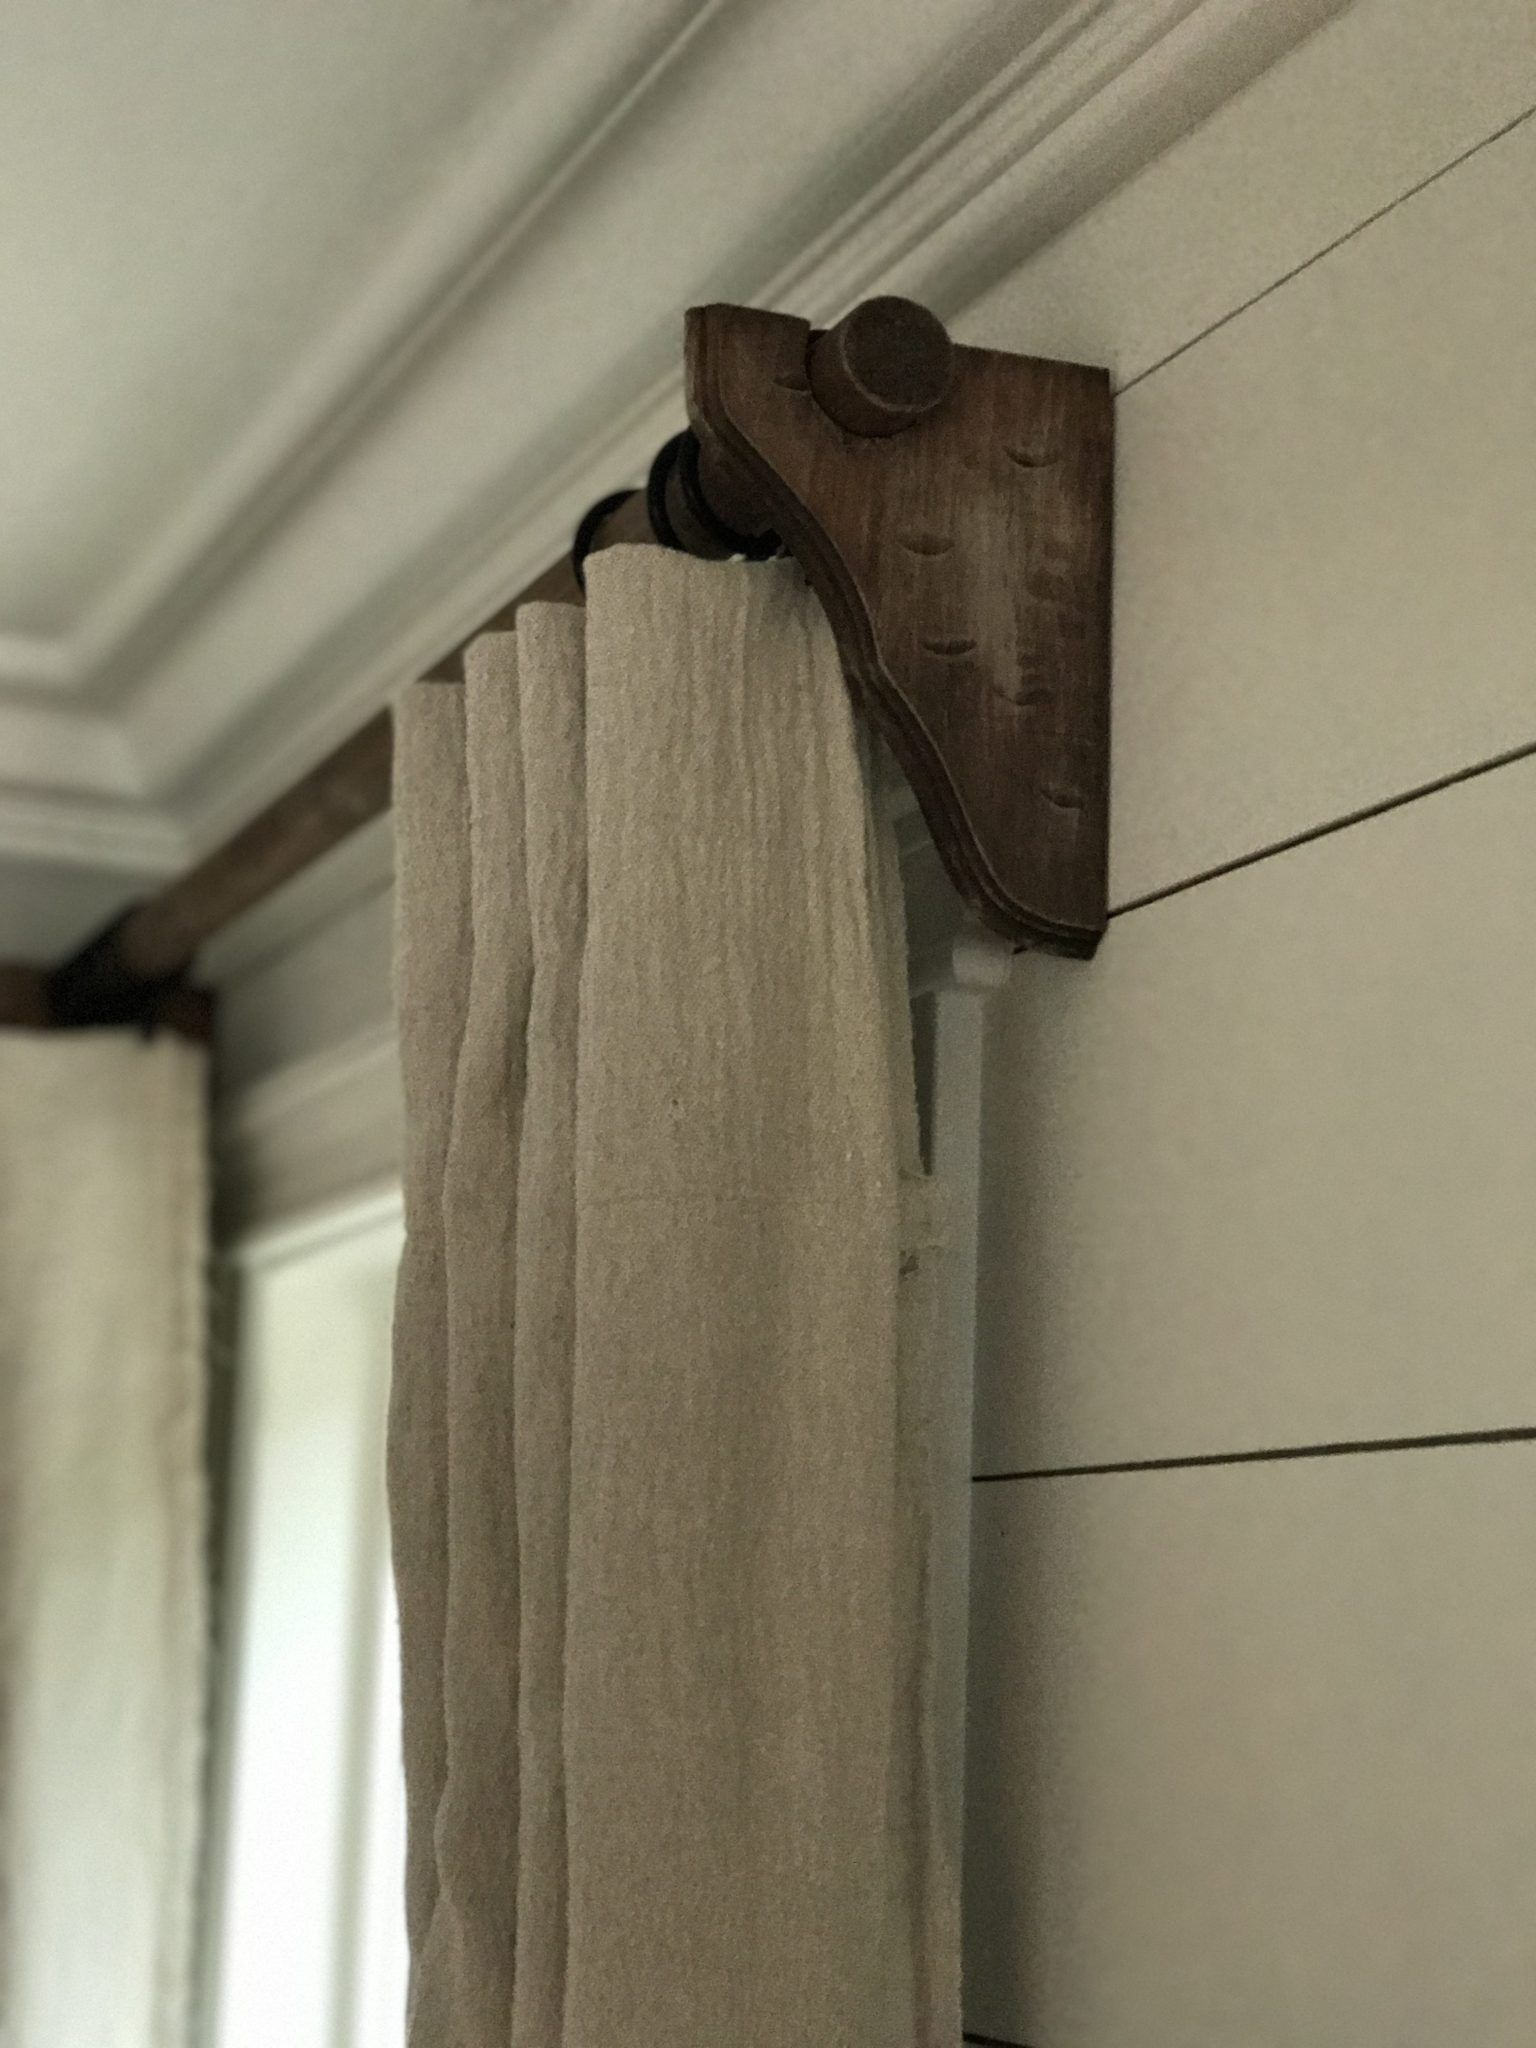 The Best Diy Curtain Rods Expensive Look Cheap To Do